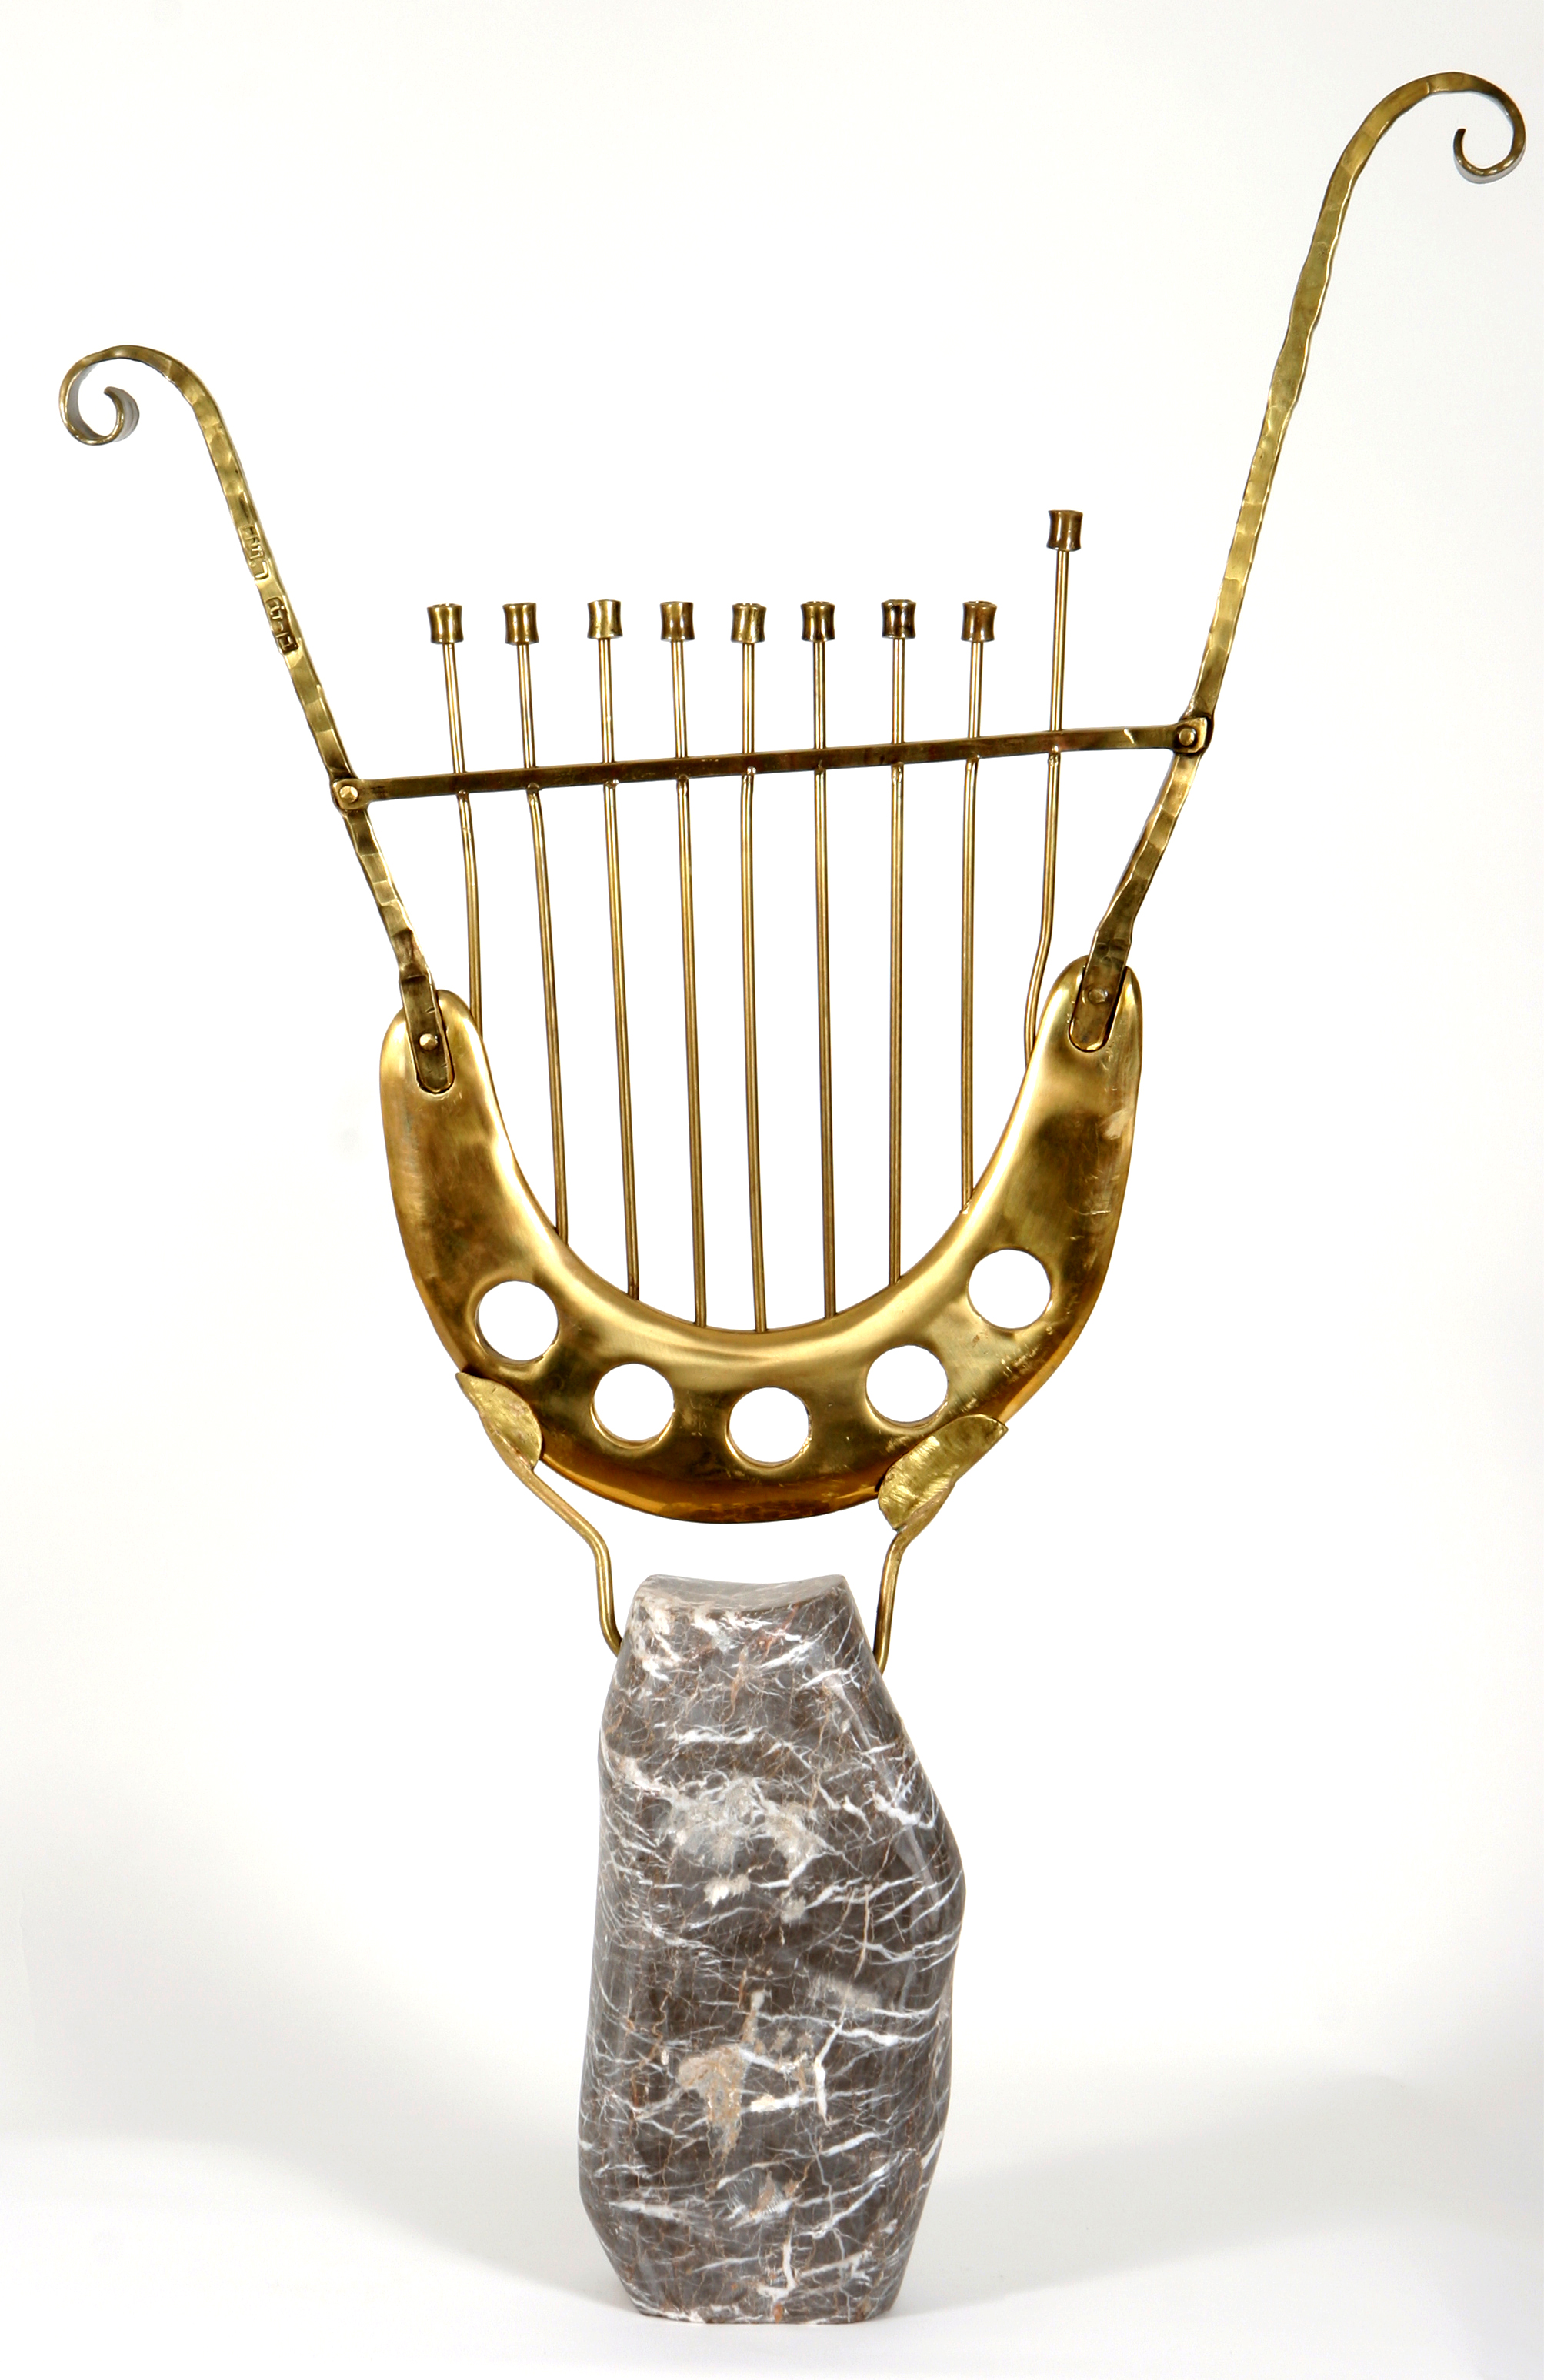 'David's Lyre in Bronze' - Artistic lyre-shaped Hannukah Menorah of Bronze & Marble